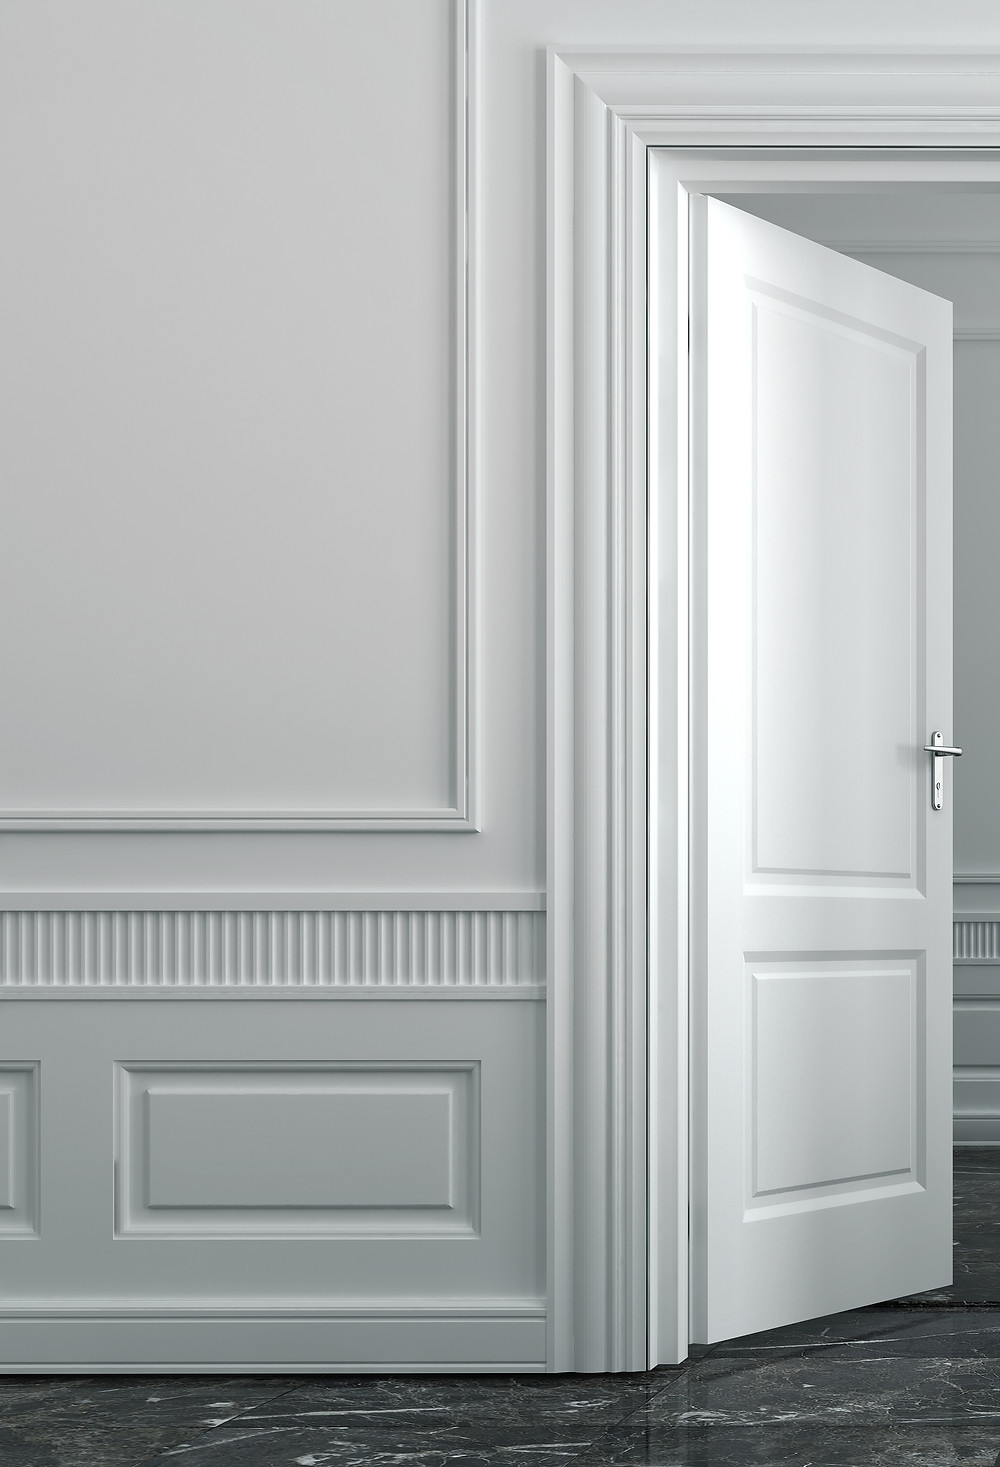 Trim Molding with Wainscotting